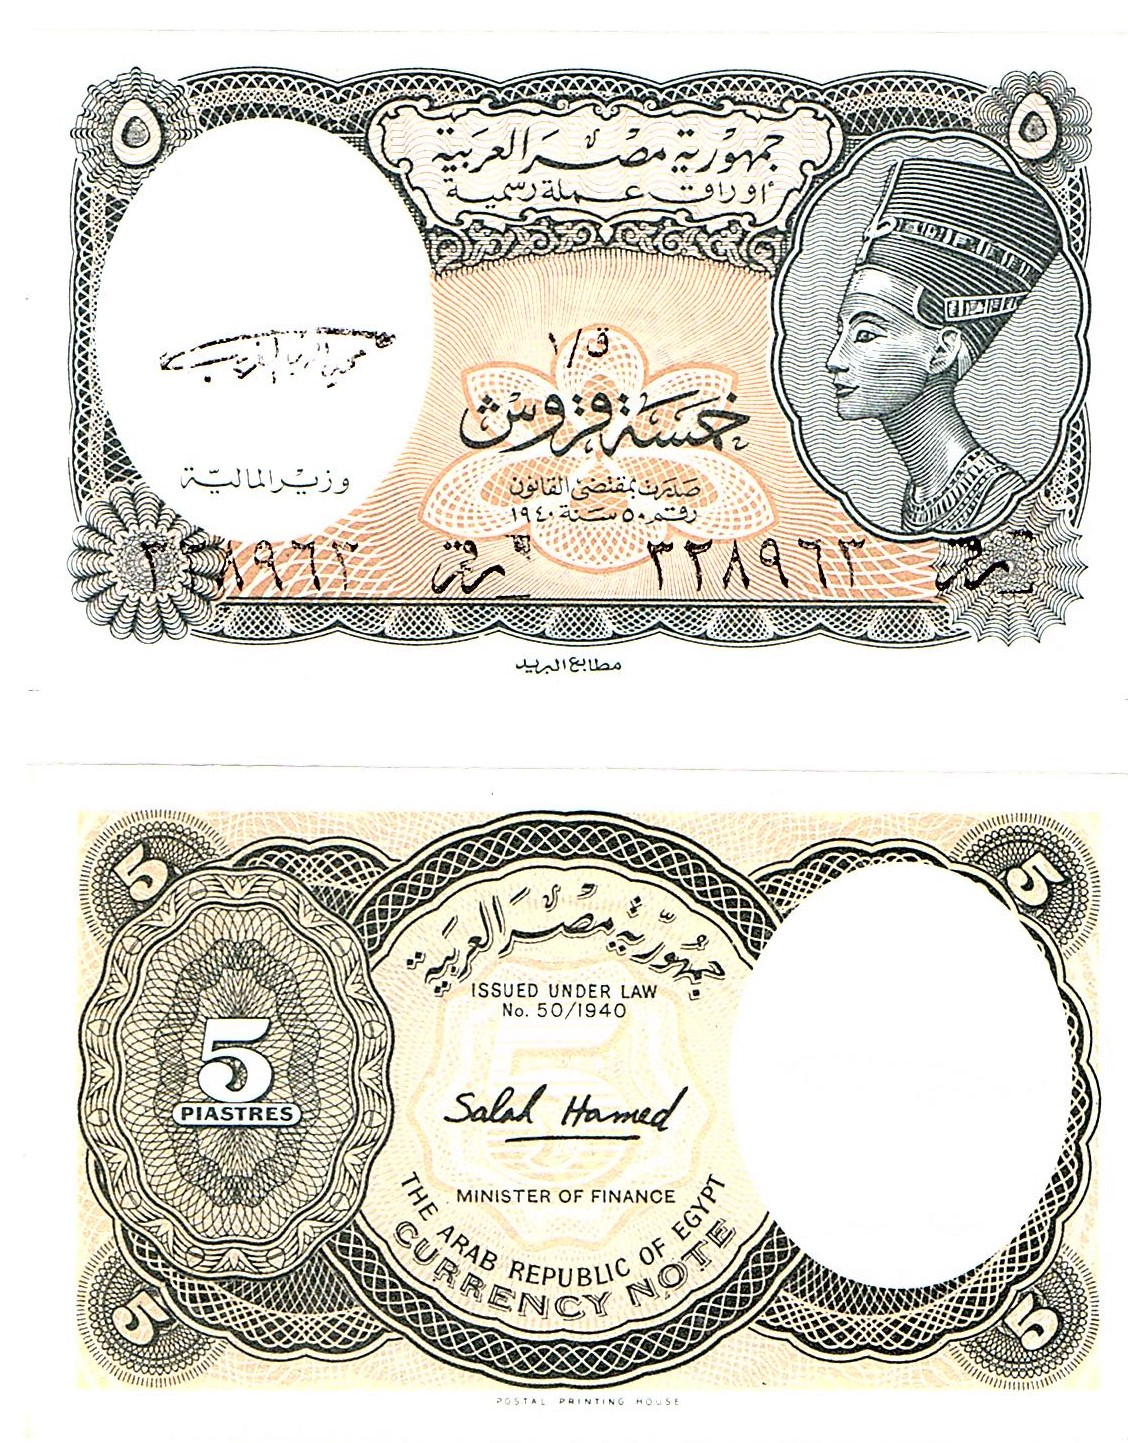 Egypt #186 5 Piastres ERROR NOTE